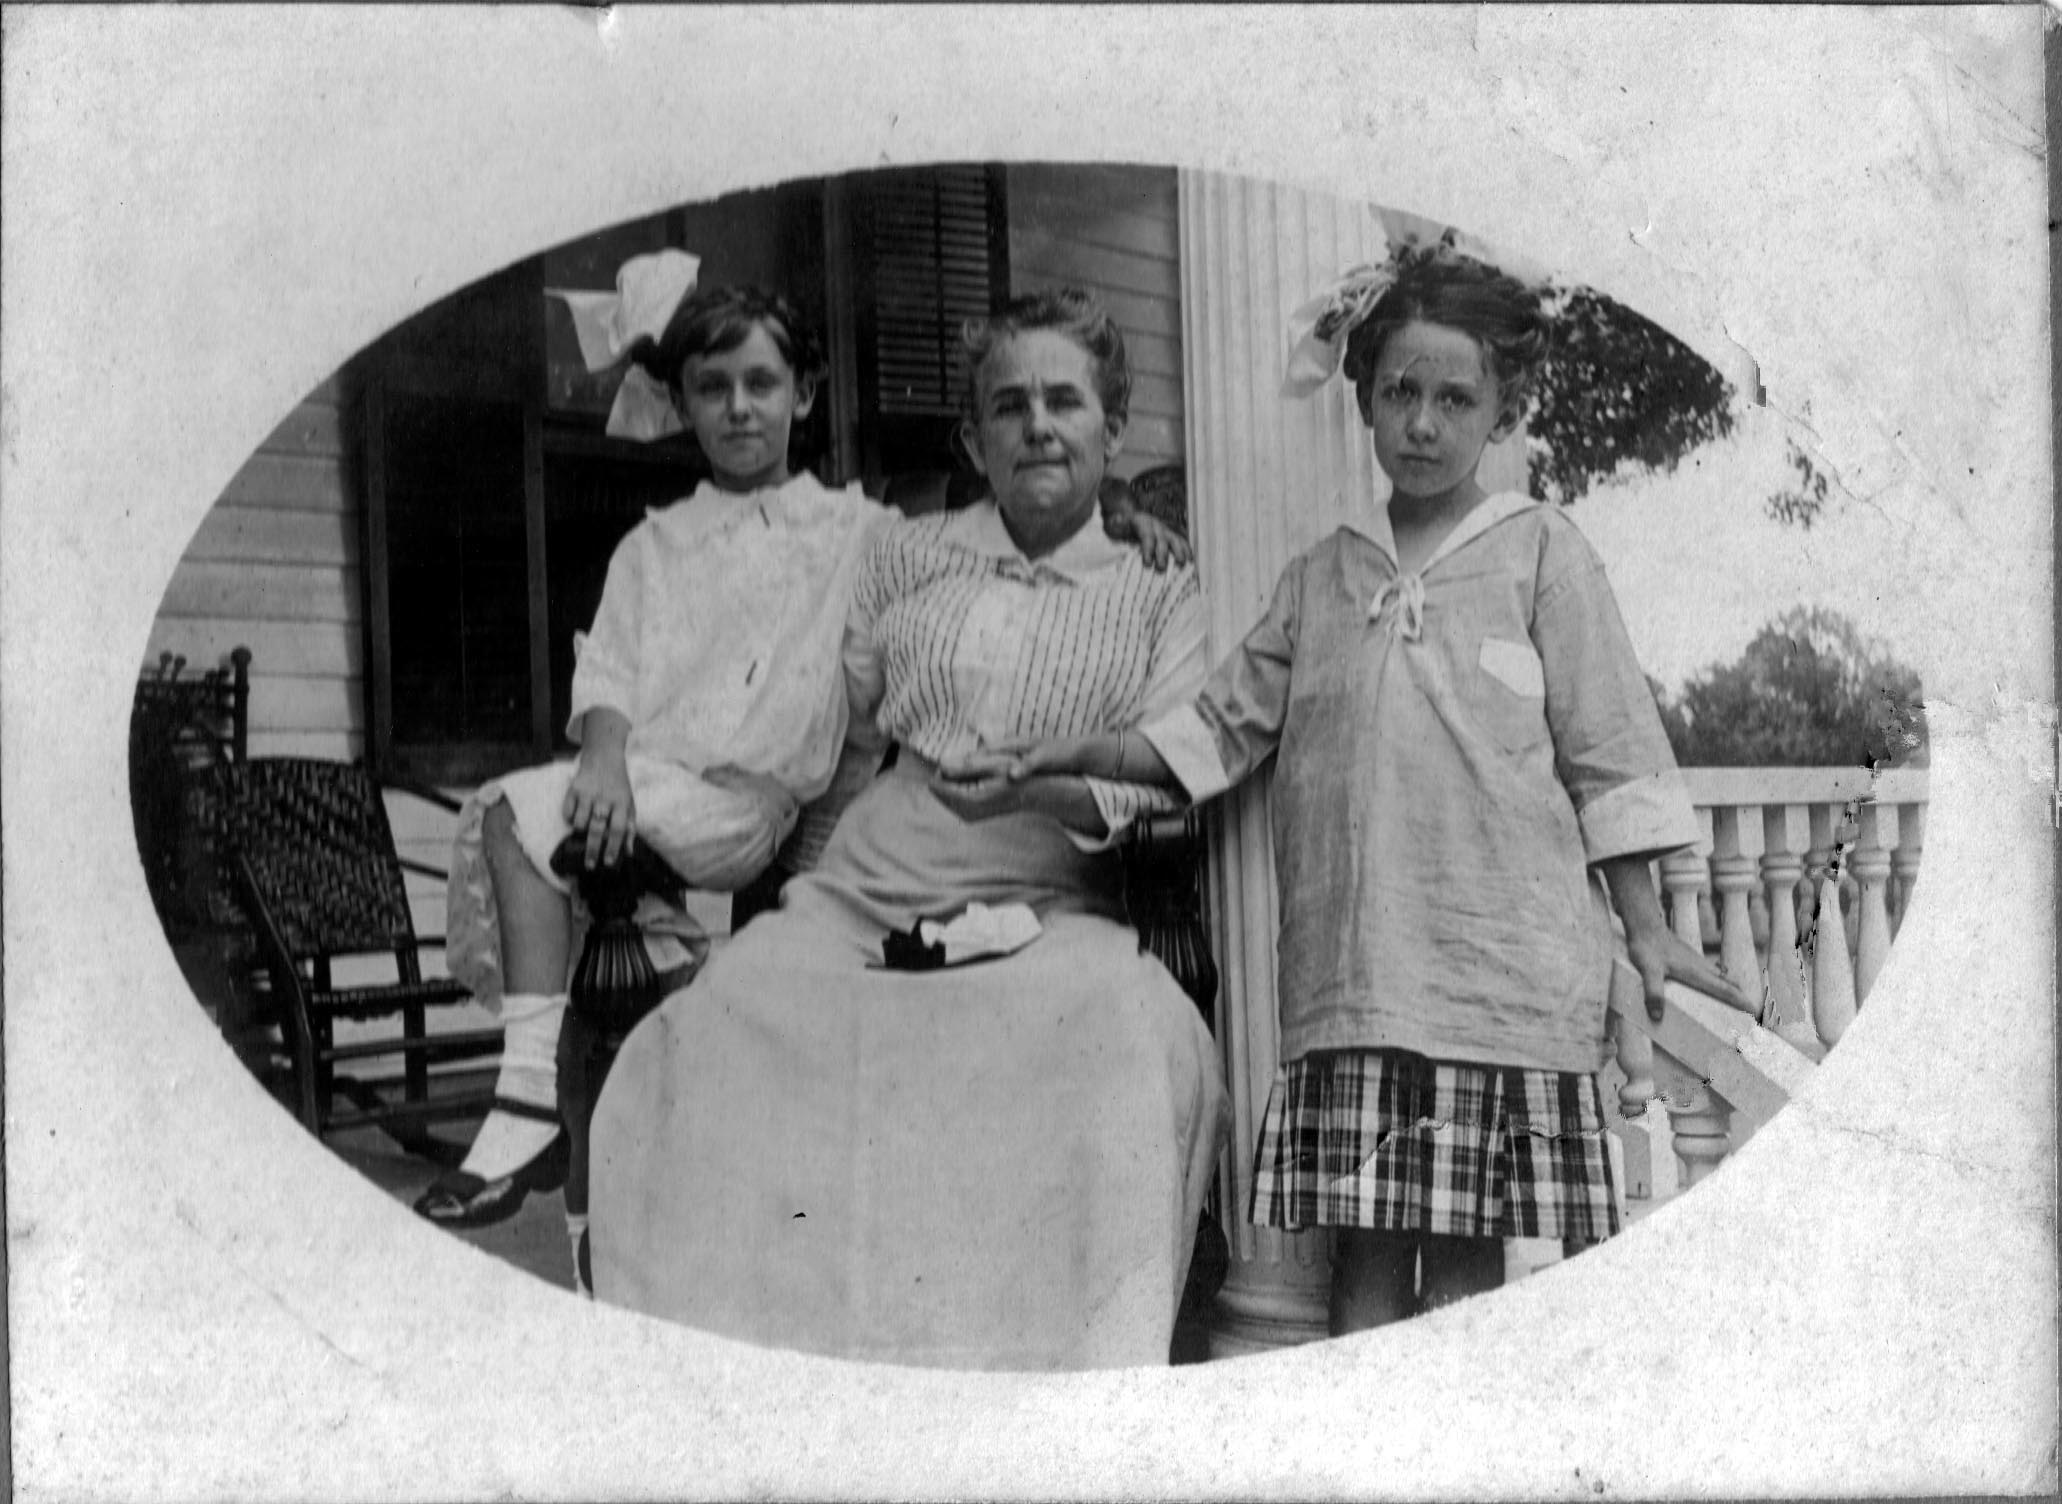 Mrs. Georgia Watson with her granddaughters, Georgia Lee and Georgia Watson